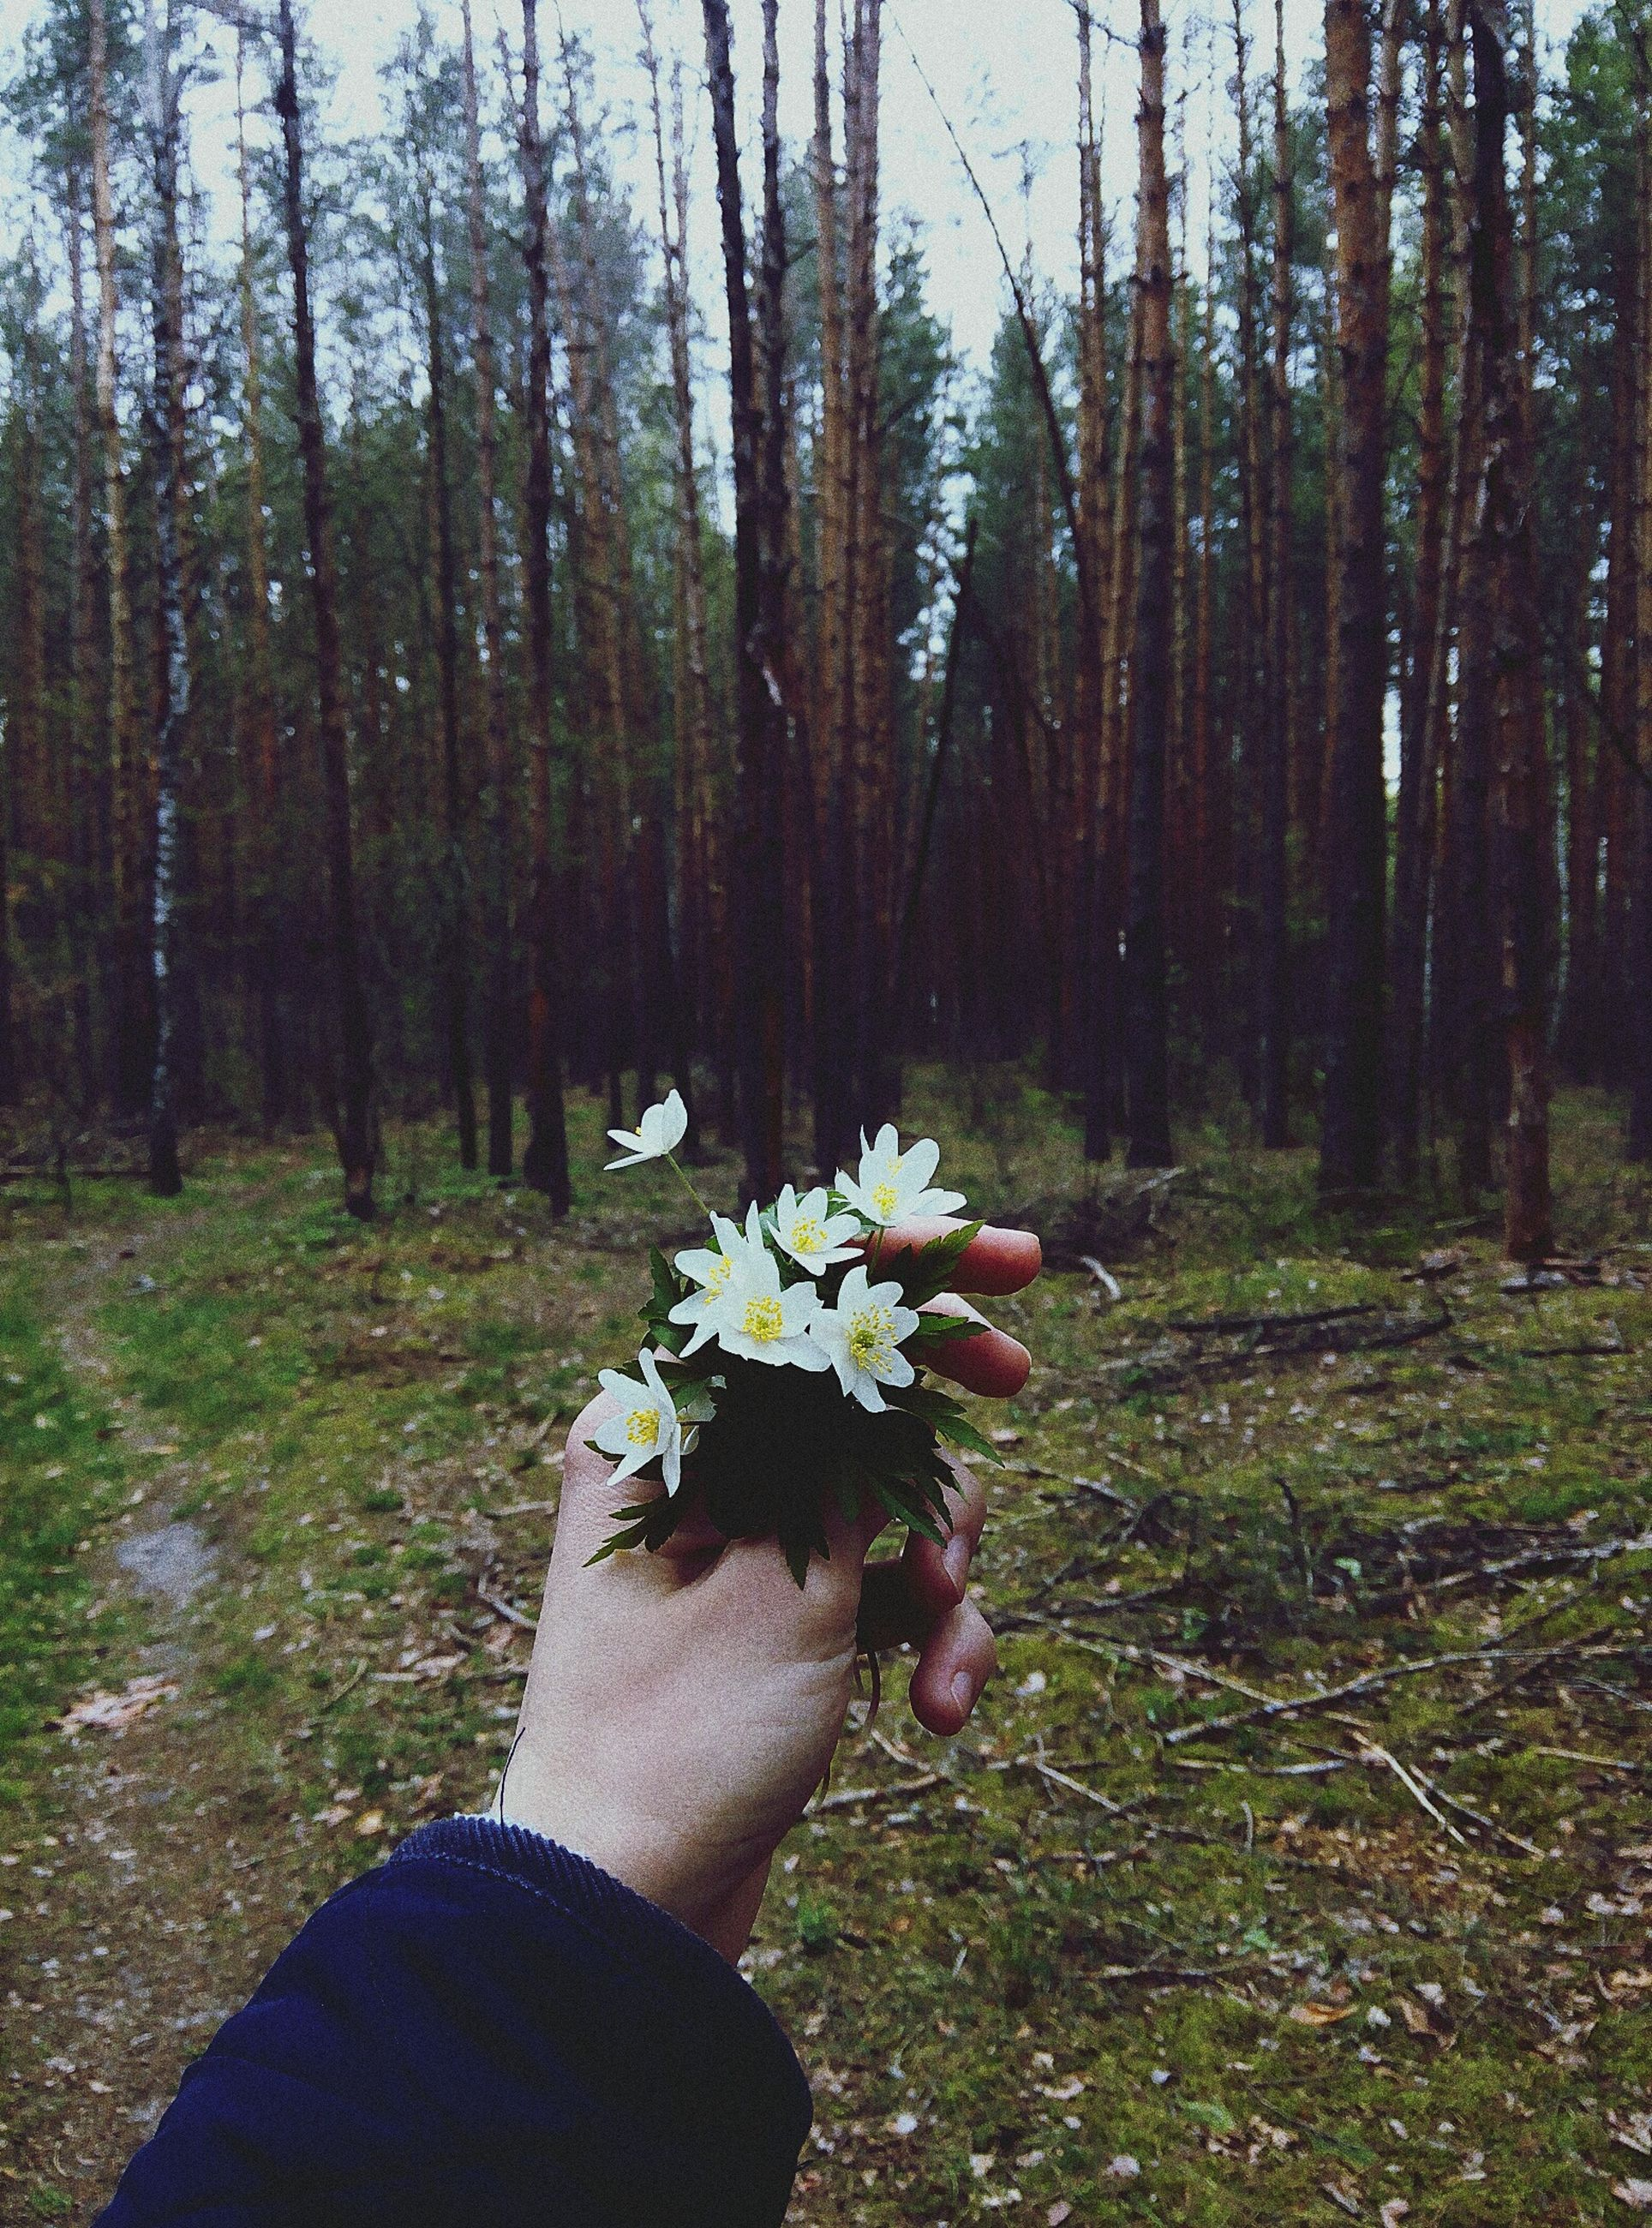 human hand, real people, one person, human body part, tree, flower, nature, lifestyles, day, beauty in nature, growth, leisure activity, women, forest, men, outdoors, adults only, only men, human leg, adult, people, low section